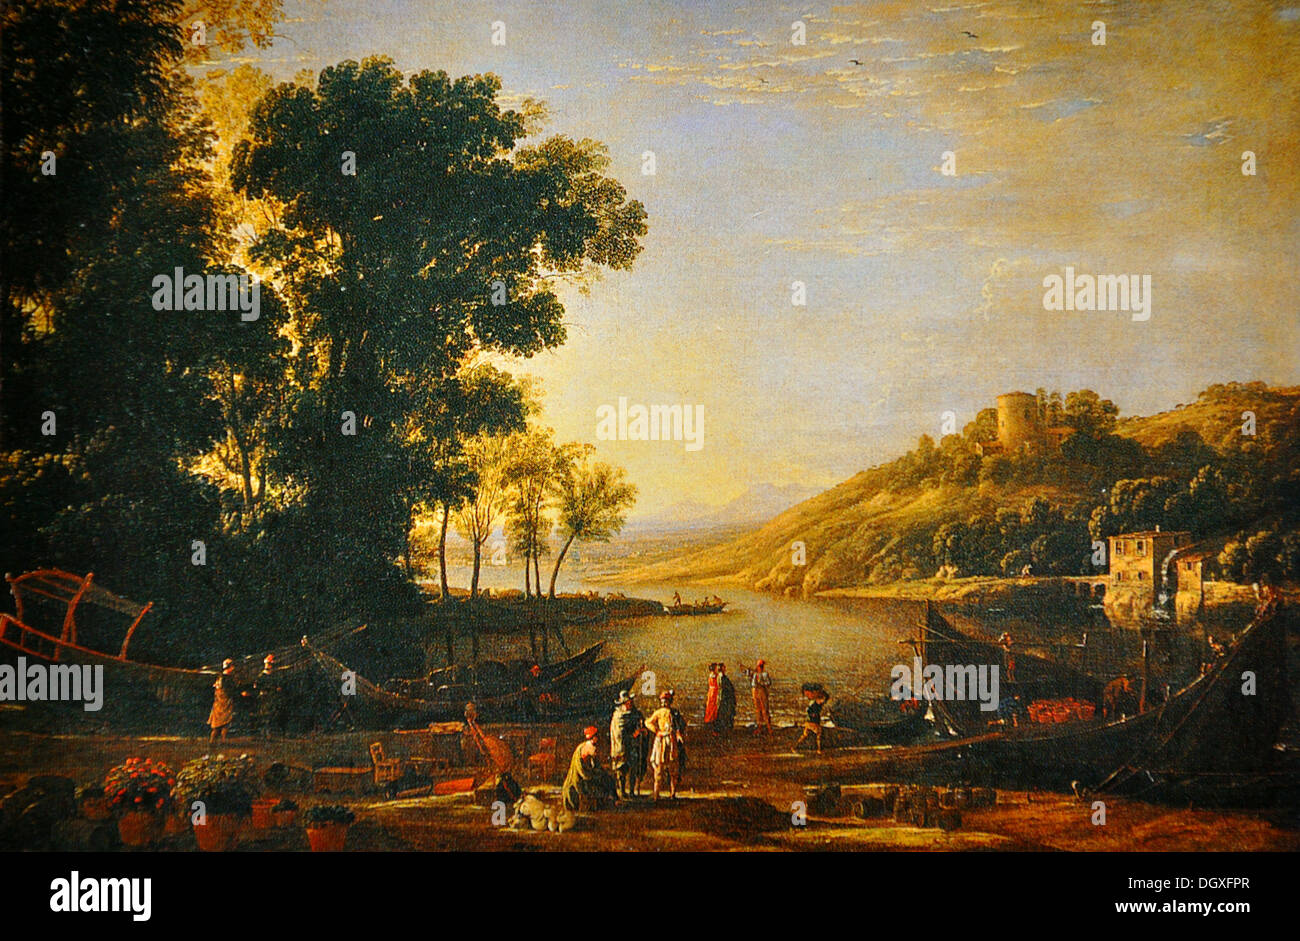 Landscape with Merchants - by Claude Lorrain, 1630 - Stock Image